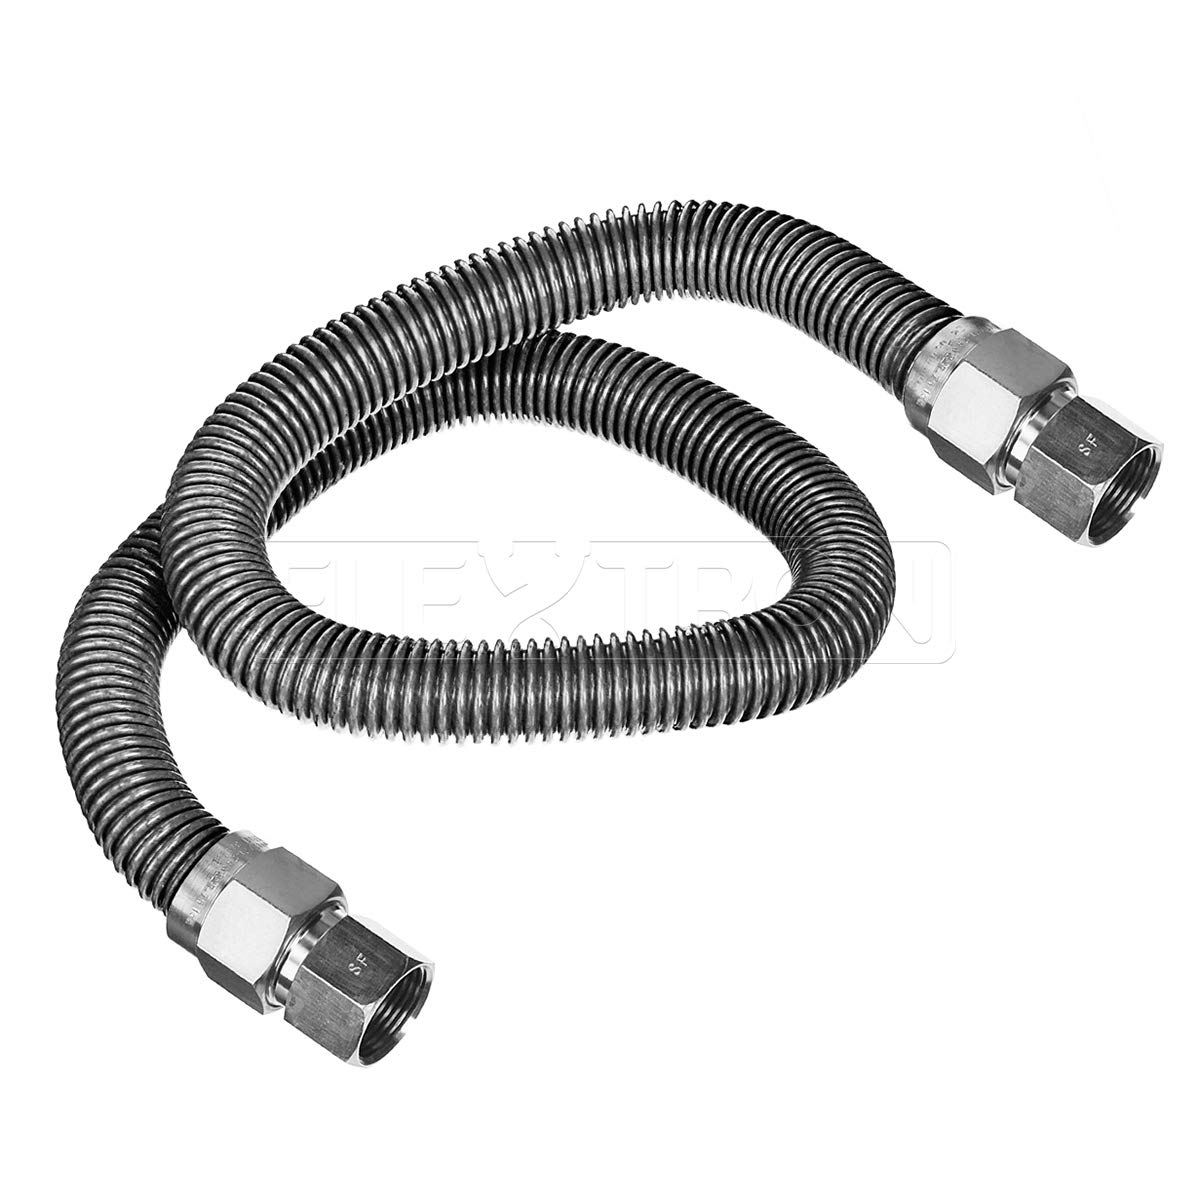 Flextron FTGC-SS38-72I 72 Inch Flexible Gas Line Connector with 1/2 Inch Outer Diameter & 3/8 Inch FIP x 3/8 Inch MIP Fittings, Uncoated Stainless Steel Water Heater Connector, CSA Approved Everflow Supplies